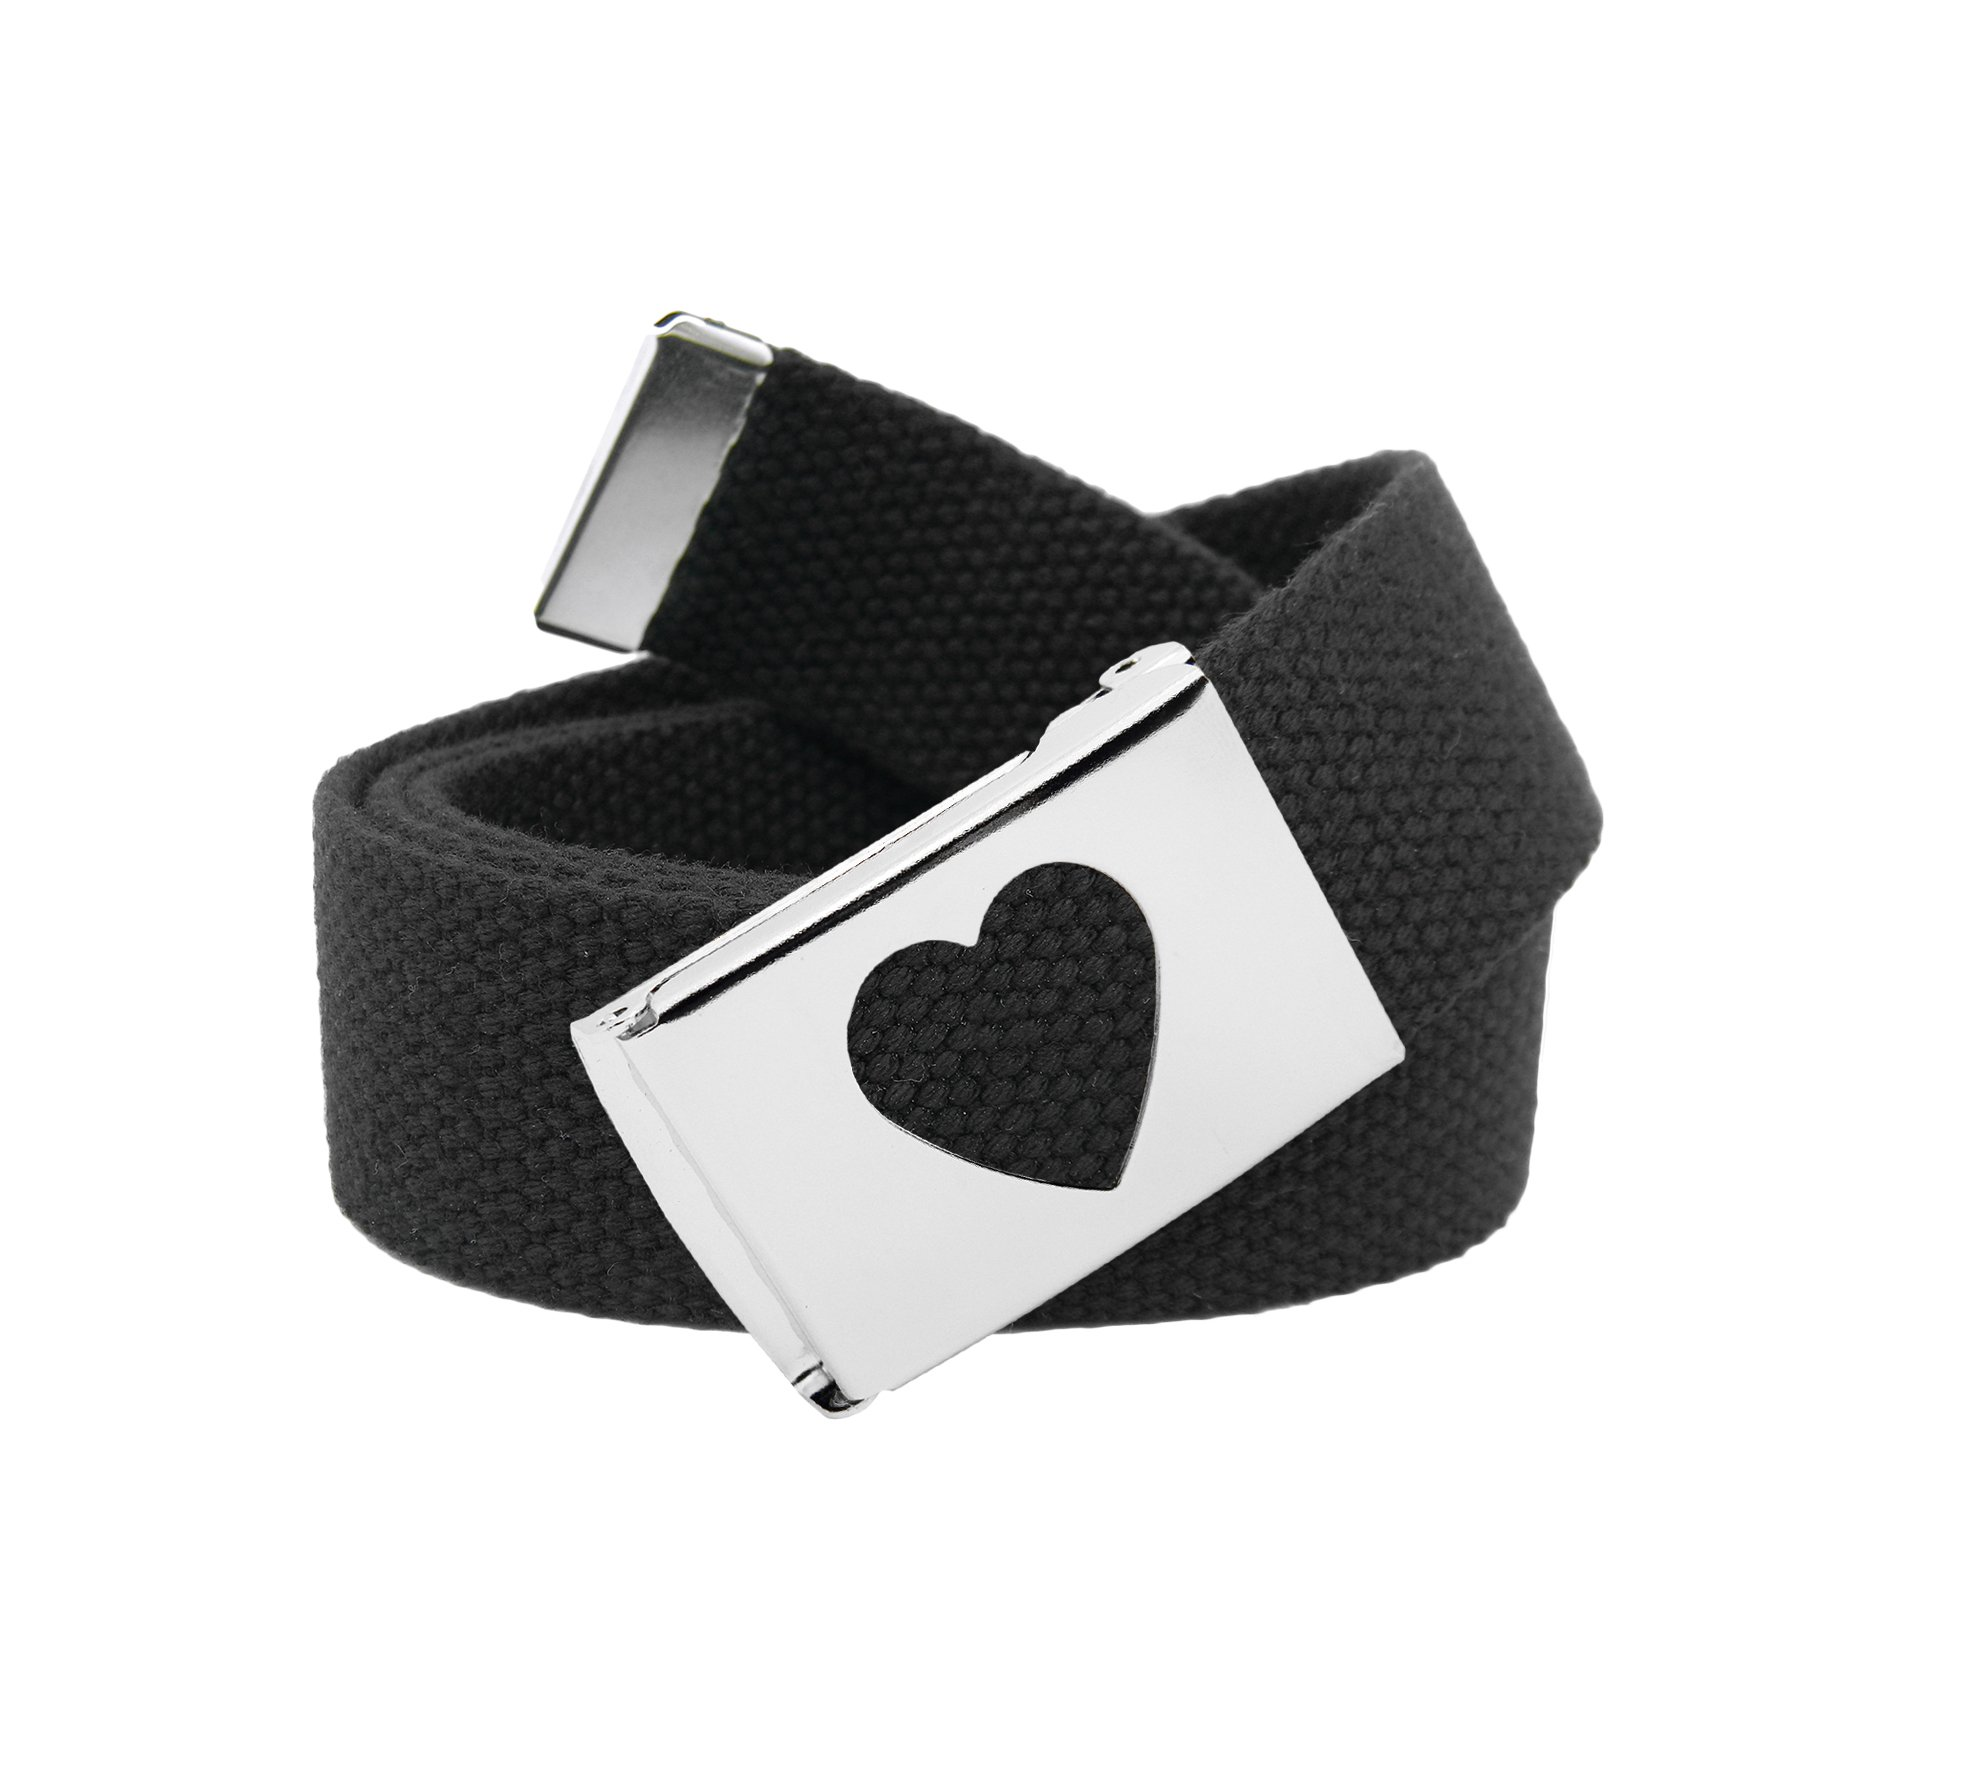 Girl's School Uniform Silver Flip Top Heart Belt Buckle with Canvas Web Belt Small Black by Build A Belt (Image #1)